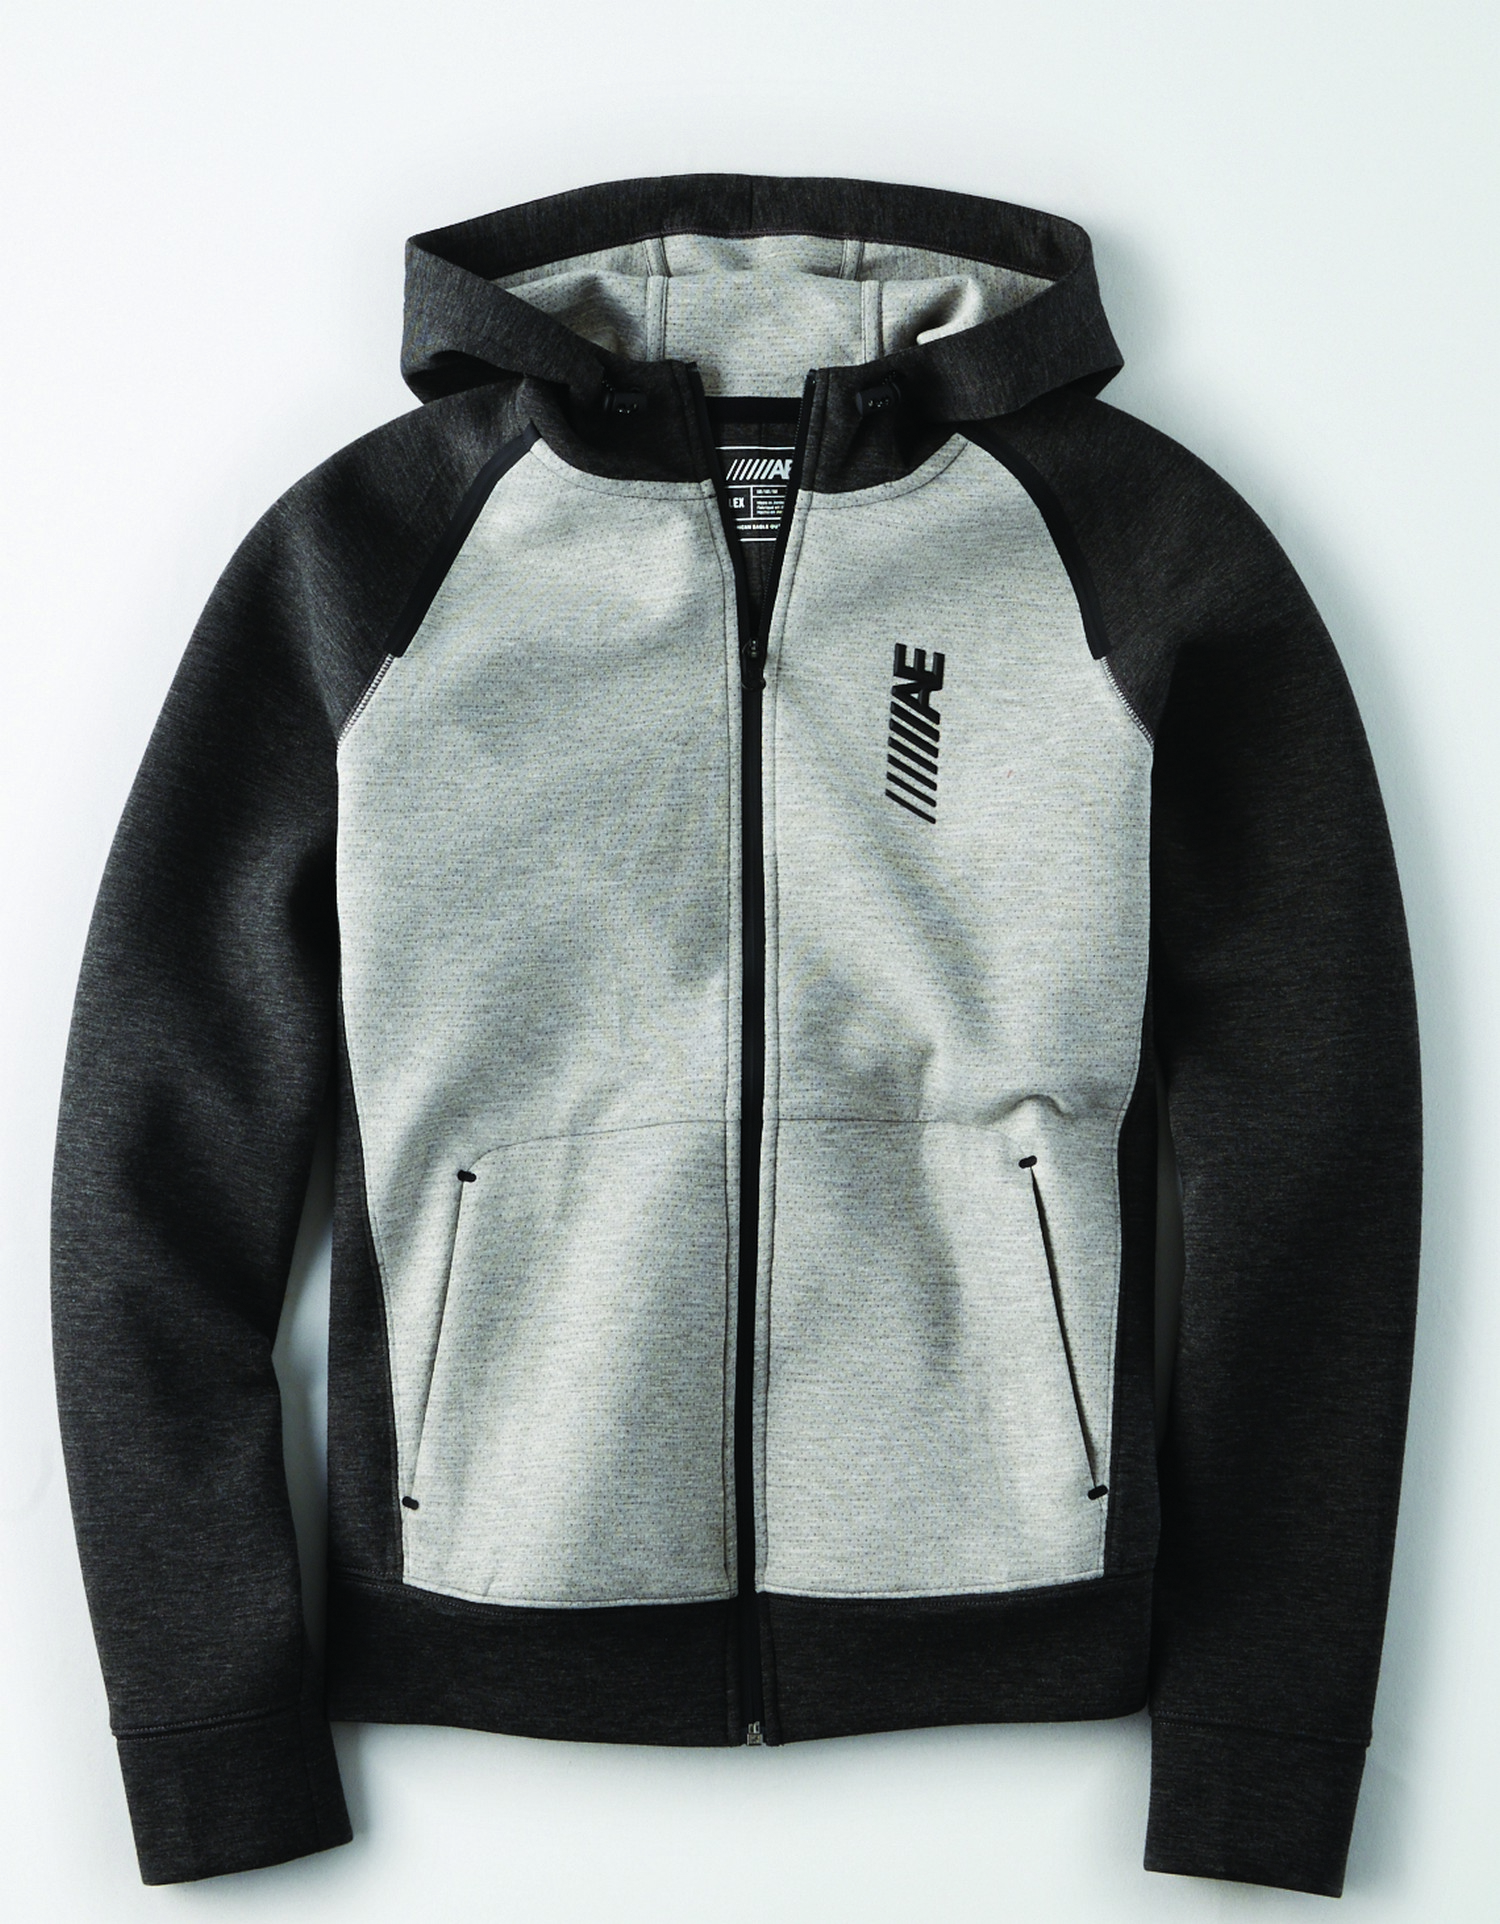 AE - M - Apparel - 9791 FZ W CURVED KANGA PKT - Grey body - Charcoal Grey sleeves, side panels, and trim - hooded - raised rubber ////AE graphic on left chest - black zipper BG *Tracked